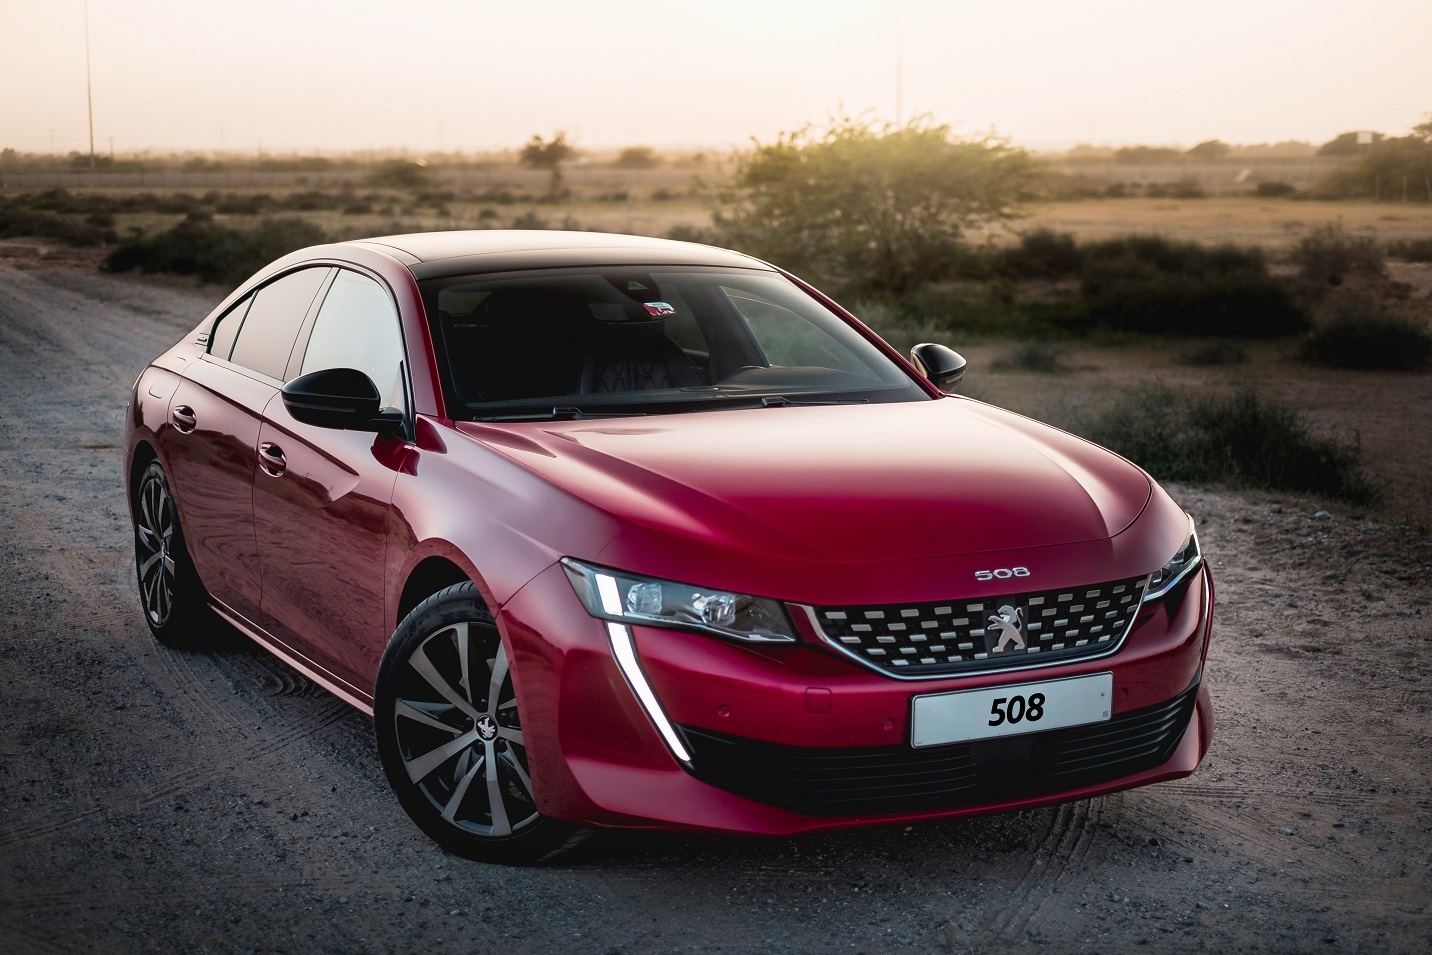 Peugeot 508 Wins 'PUBLIC CAR OF THE YEAR' at 2020 MECOTY Awards